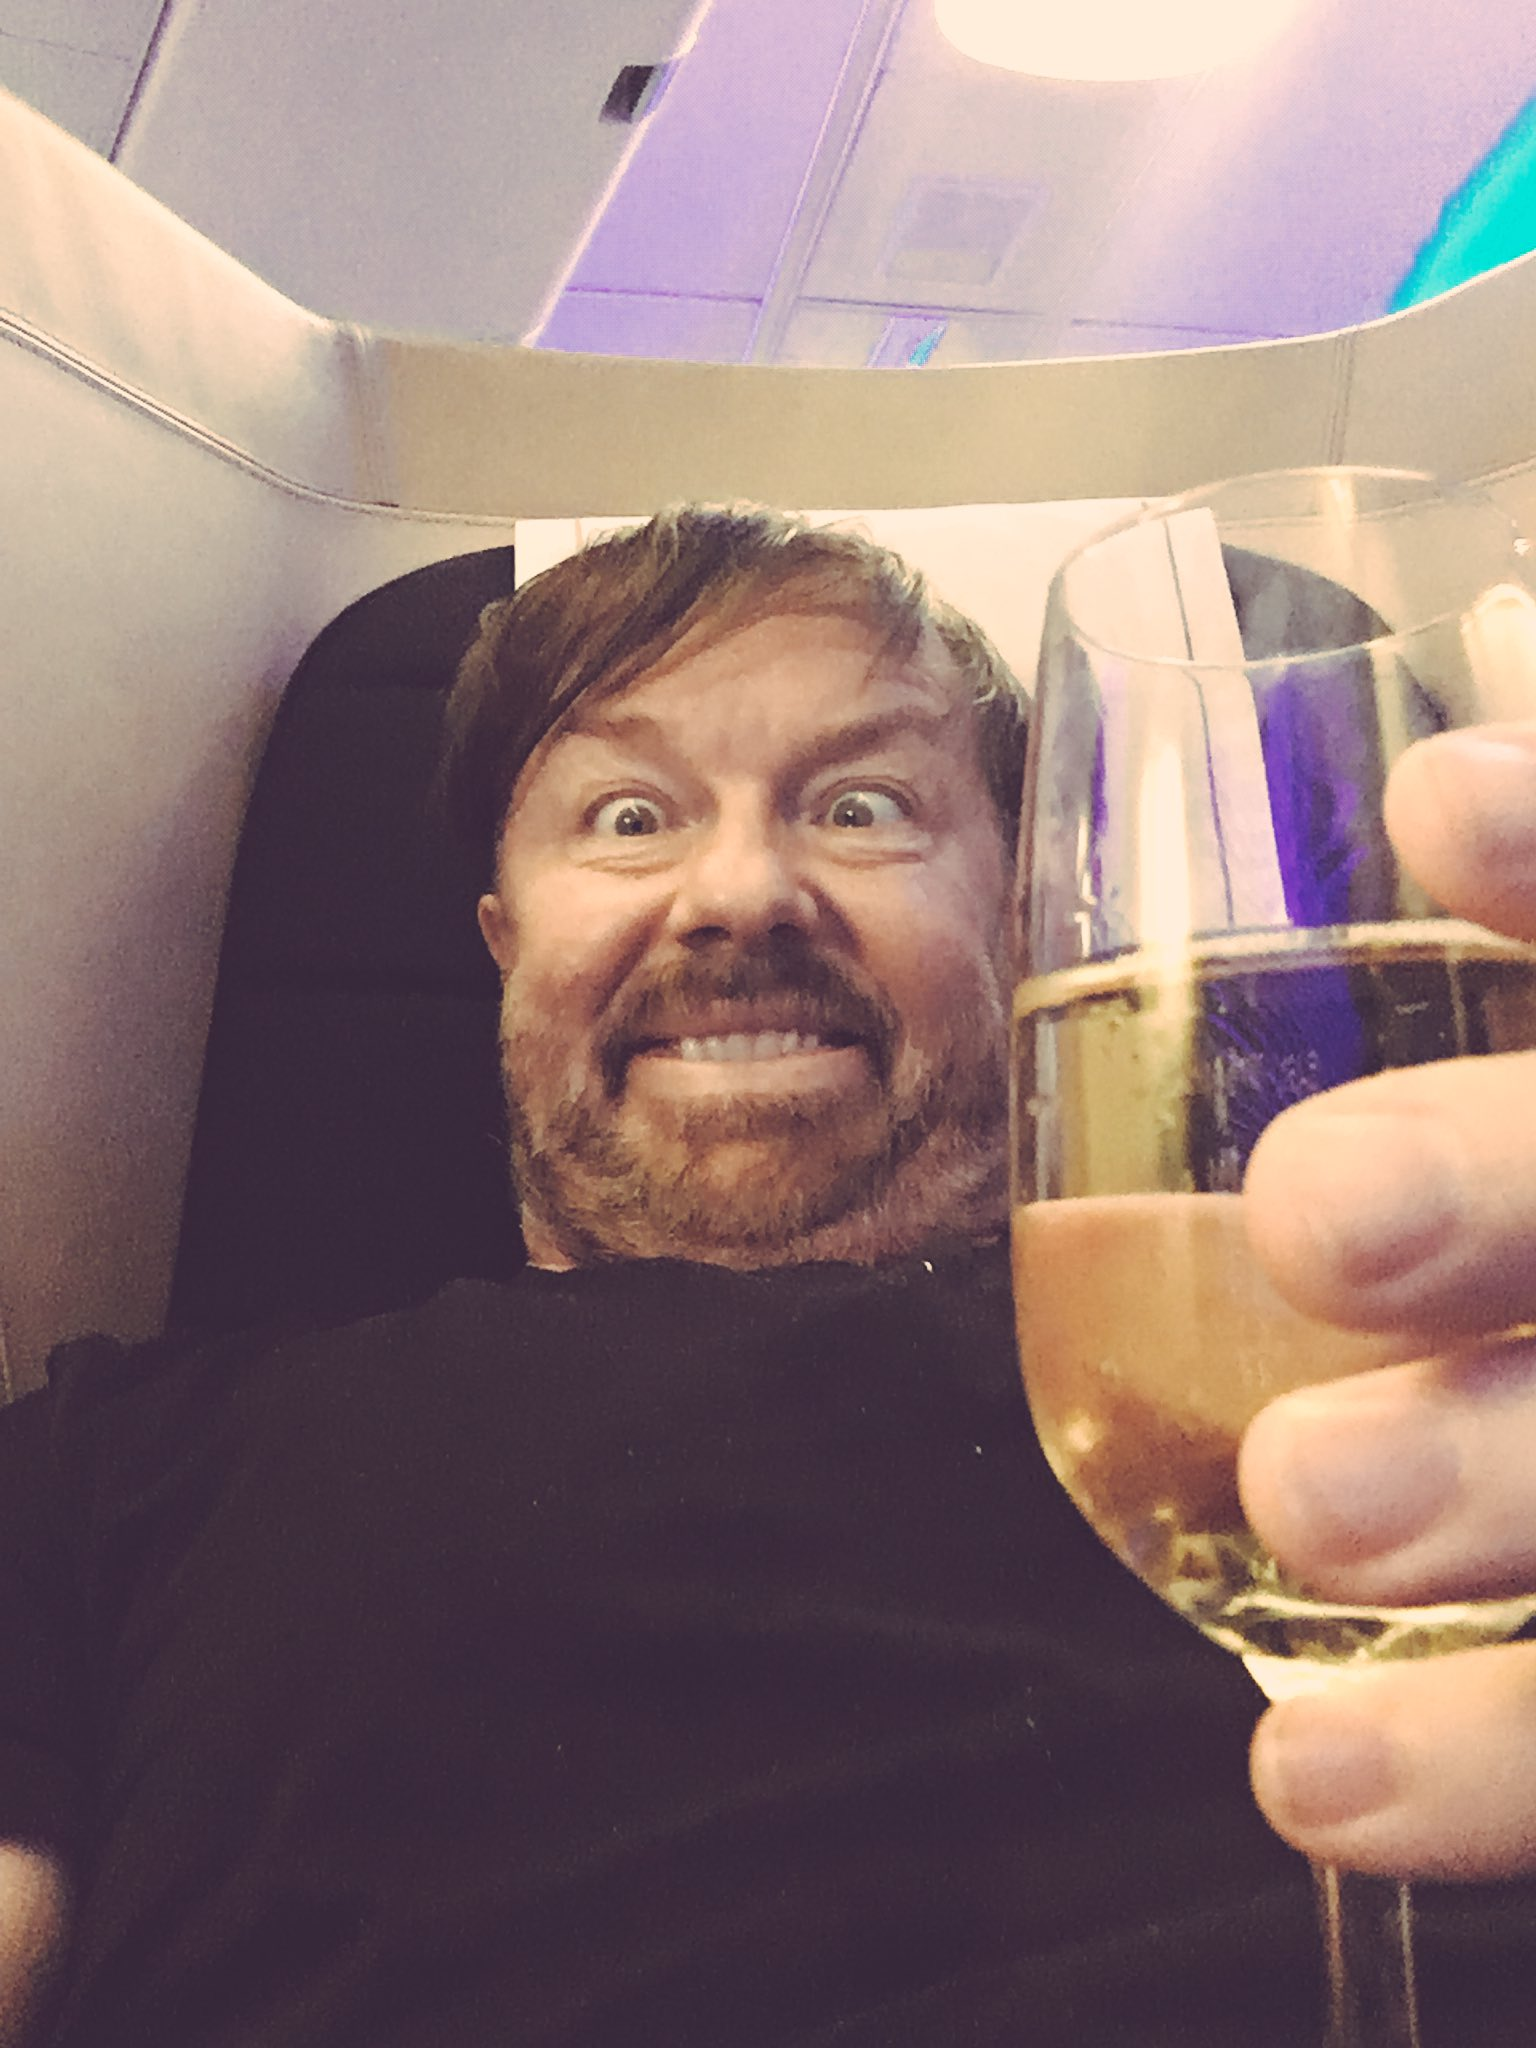 Off to London. Cheers! https://t.co/ISnuapWk5F